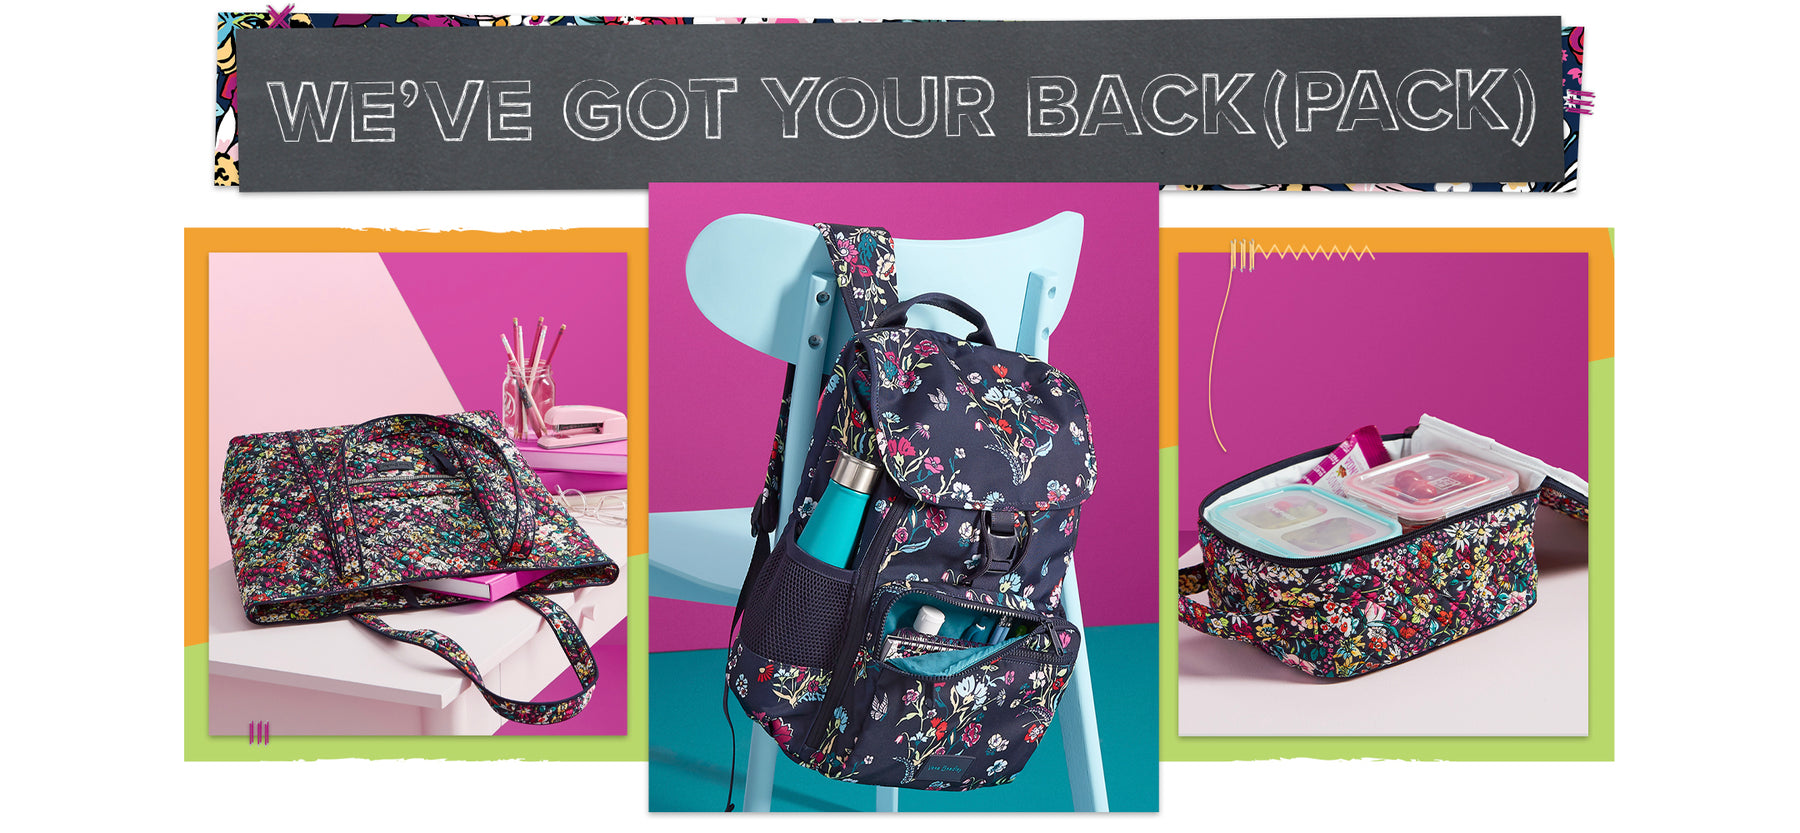 We've got your back(pack)